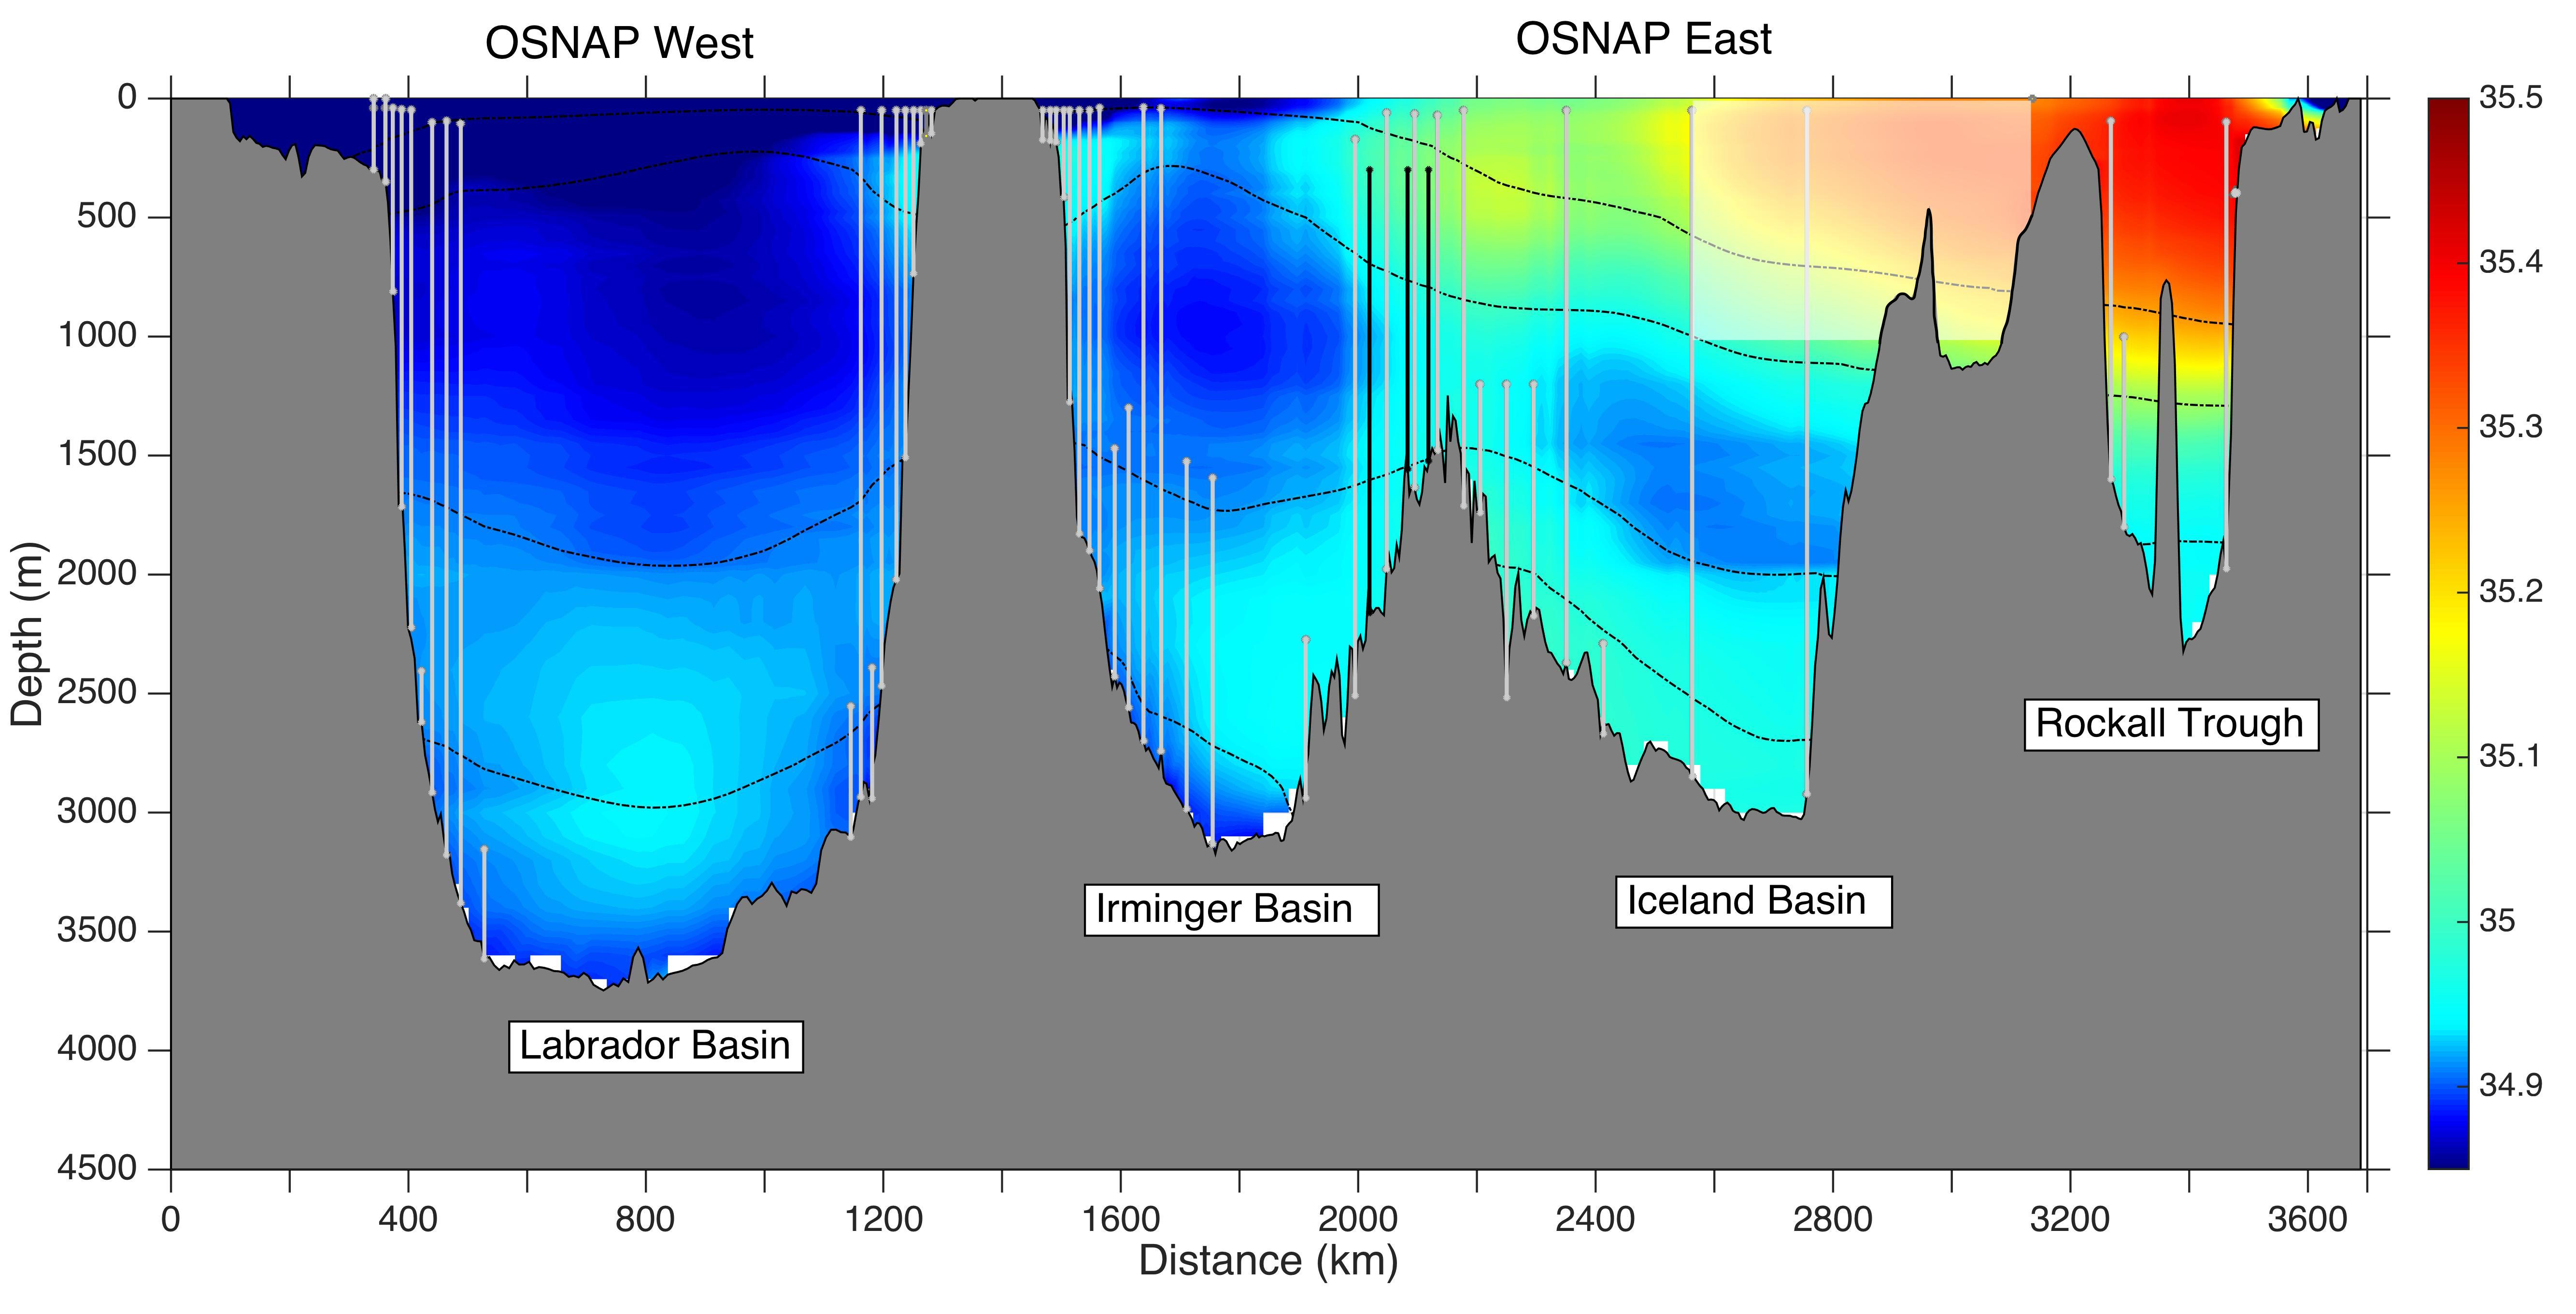 OSNAP array superposed on climatological salinity along the OSNAP West and East lines. Color shading is 2005-2012 mean salinity from WOA13; black dashed lines are isopycnals of 27.5, 27.75, 27.8, and 27.88 kg m-3. OSNAP mooring locations (vertical gray lines) and glider domain (shaded white box) are indicated. Vertical black lines over the western flank of the Reykjanes Ridge illustrate three moorings as part of the RREX program.